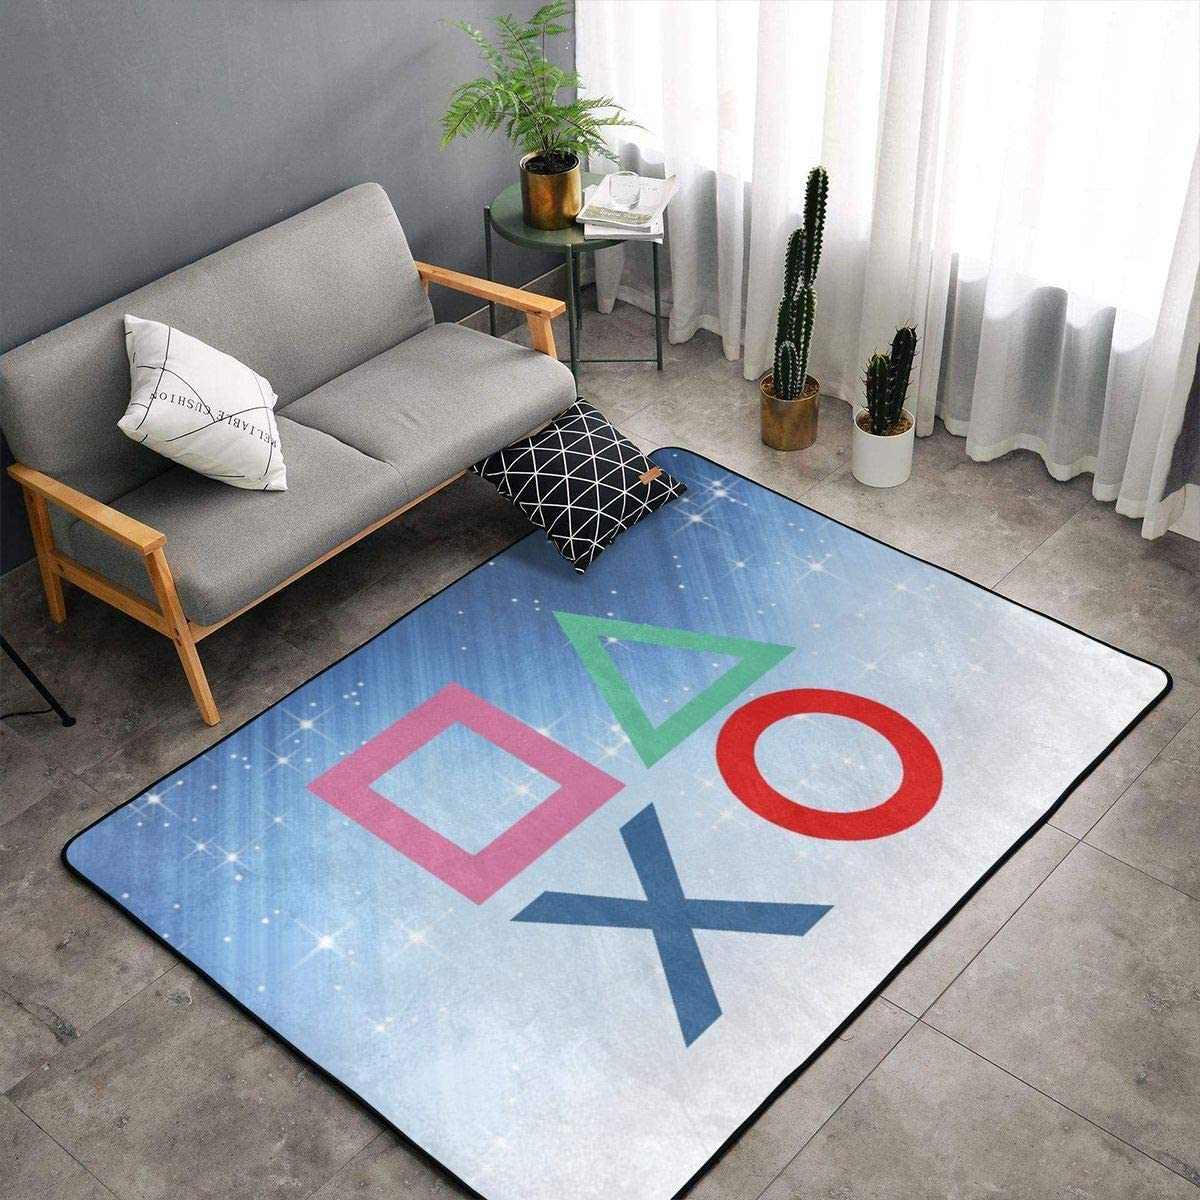 Bedroom Livingroom Sitting Room Big Size Kitchen Rugs Home Decor Playstation Joypad Floor Mat Doormats Fast Dry Toilet Bath Rug Exercise Mat Throw Rugs Carpet Amazon Ca Home Kitchen